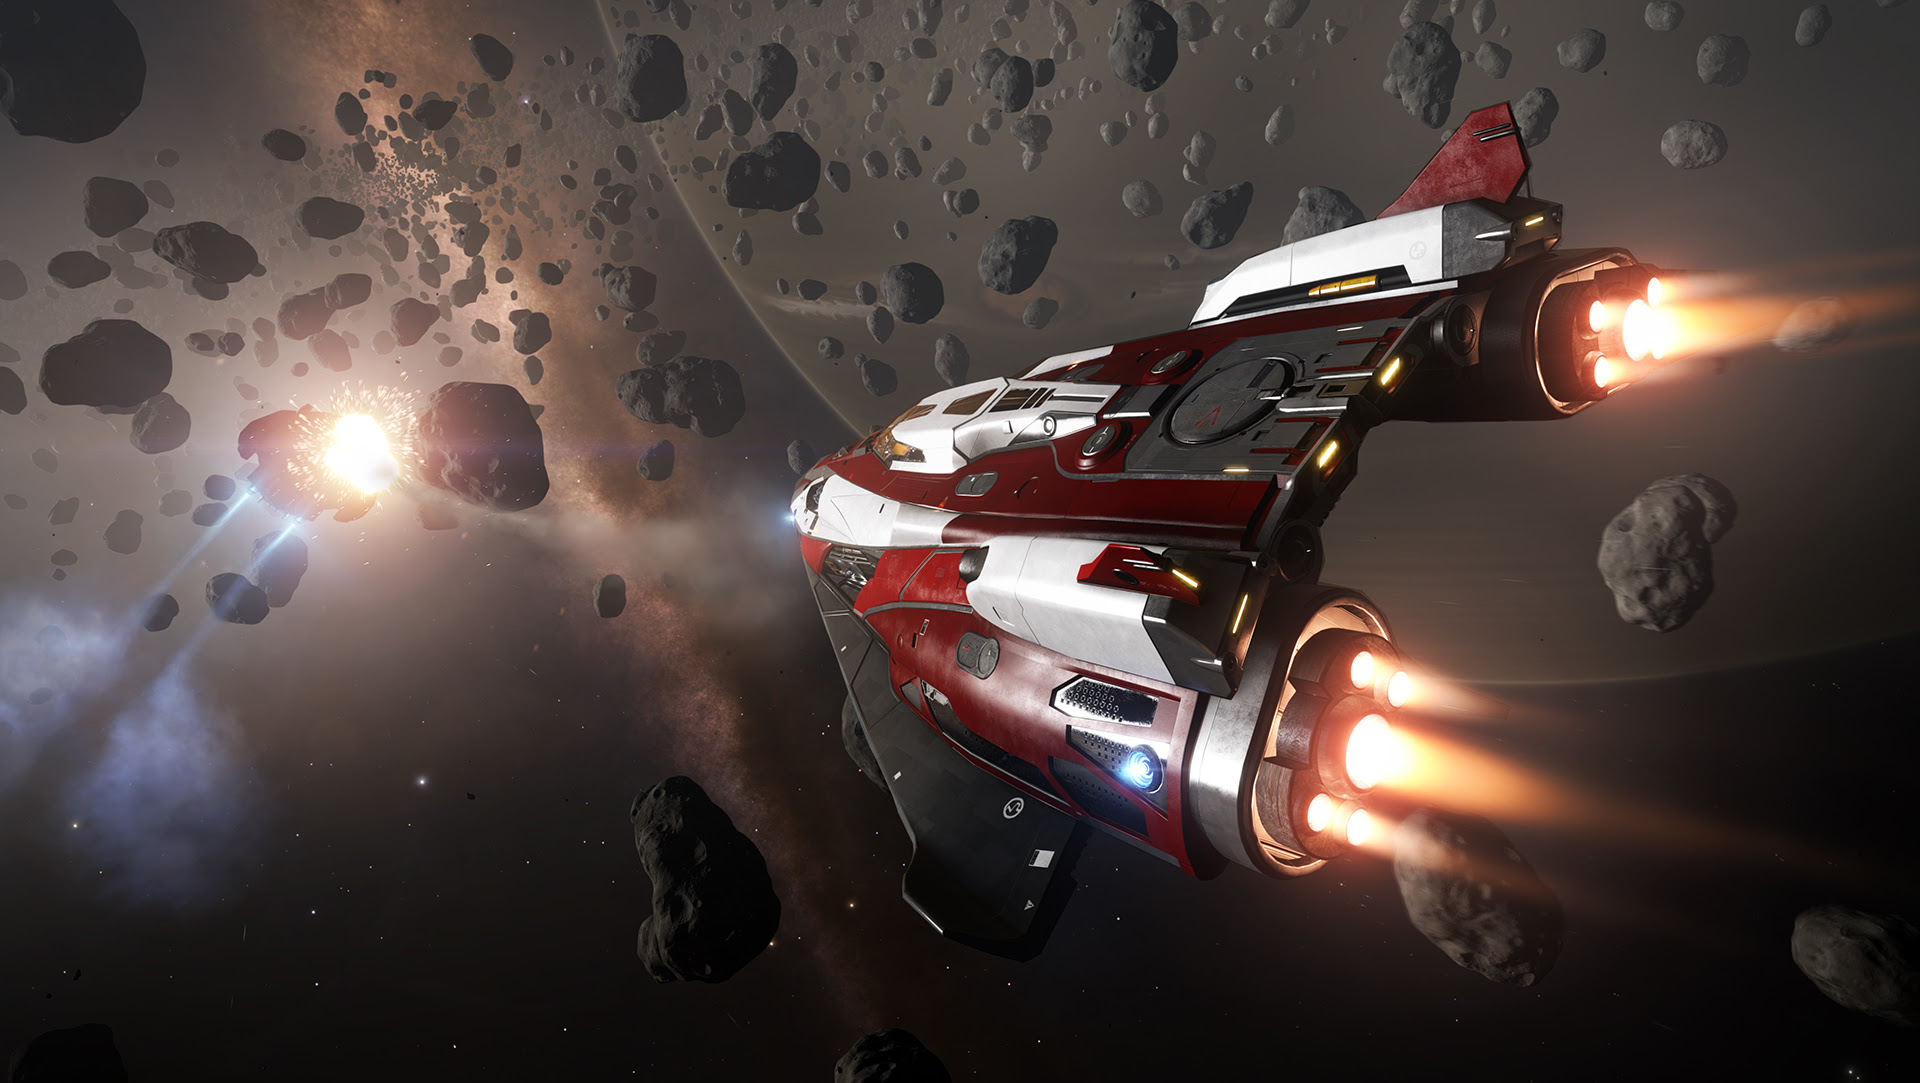 Elite Dangerous is available now on PS4, and Elite was a bloody masterpiece screenshot